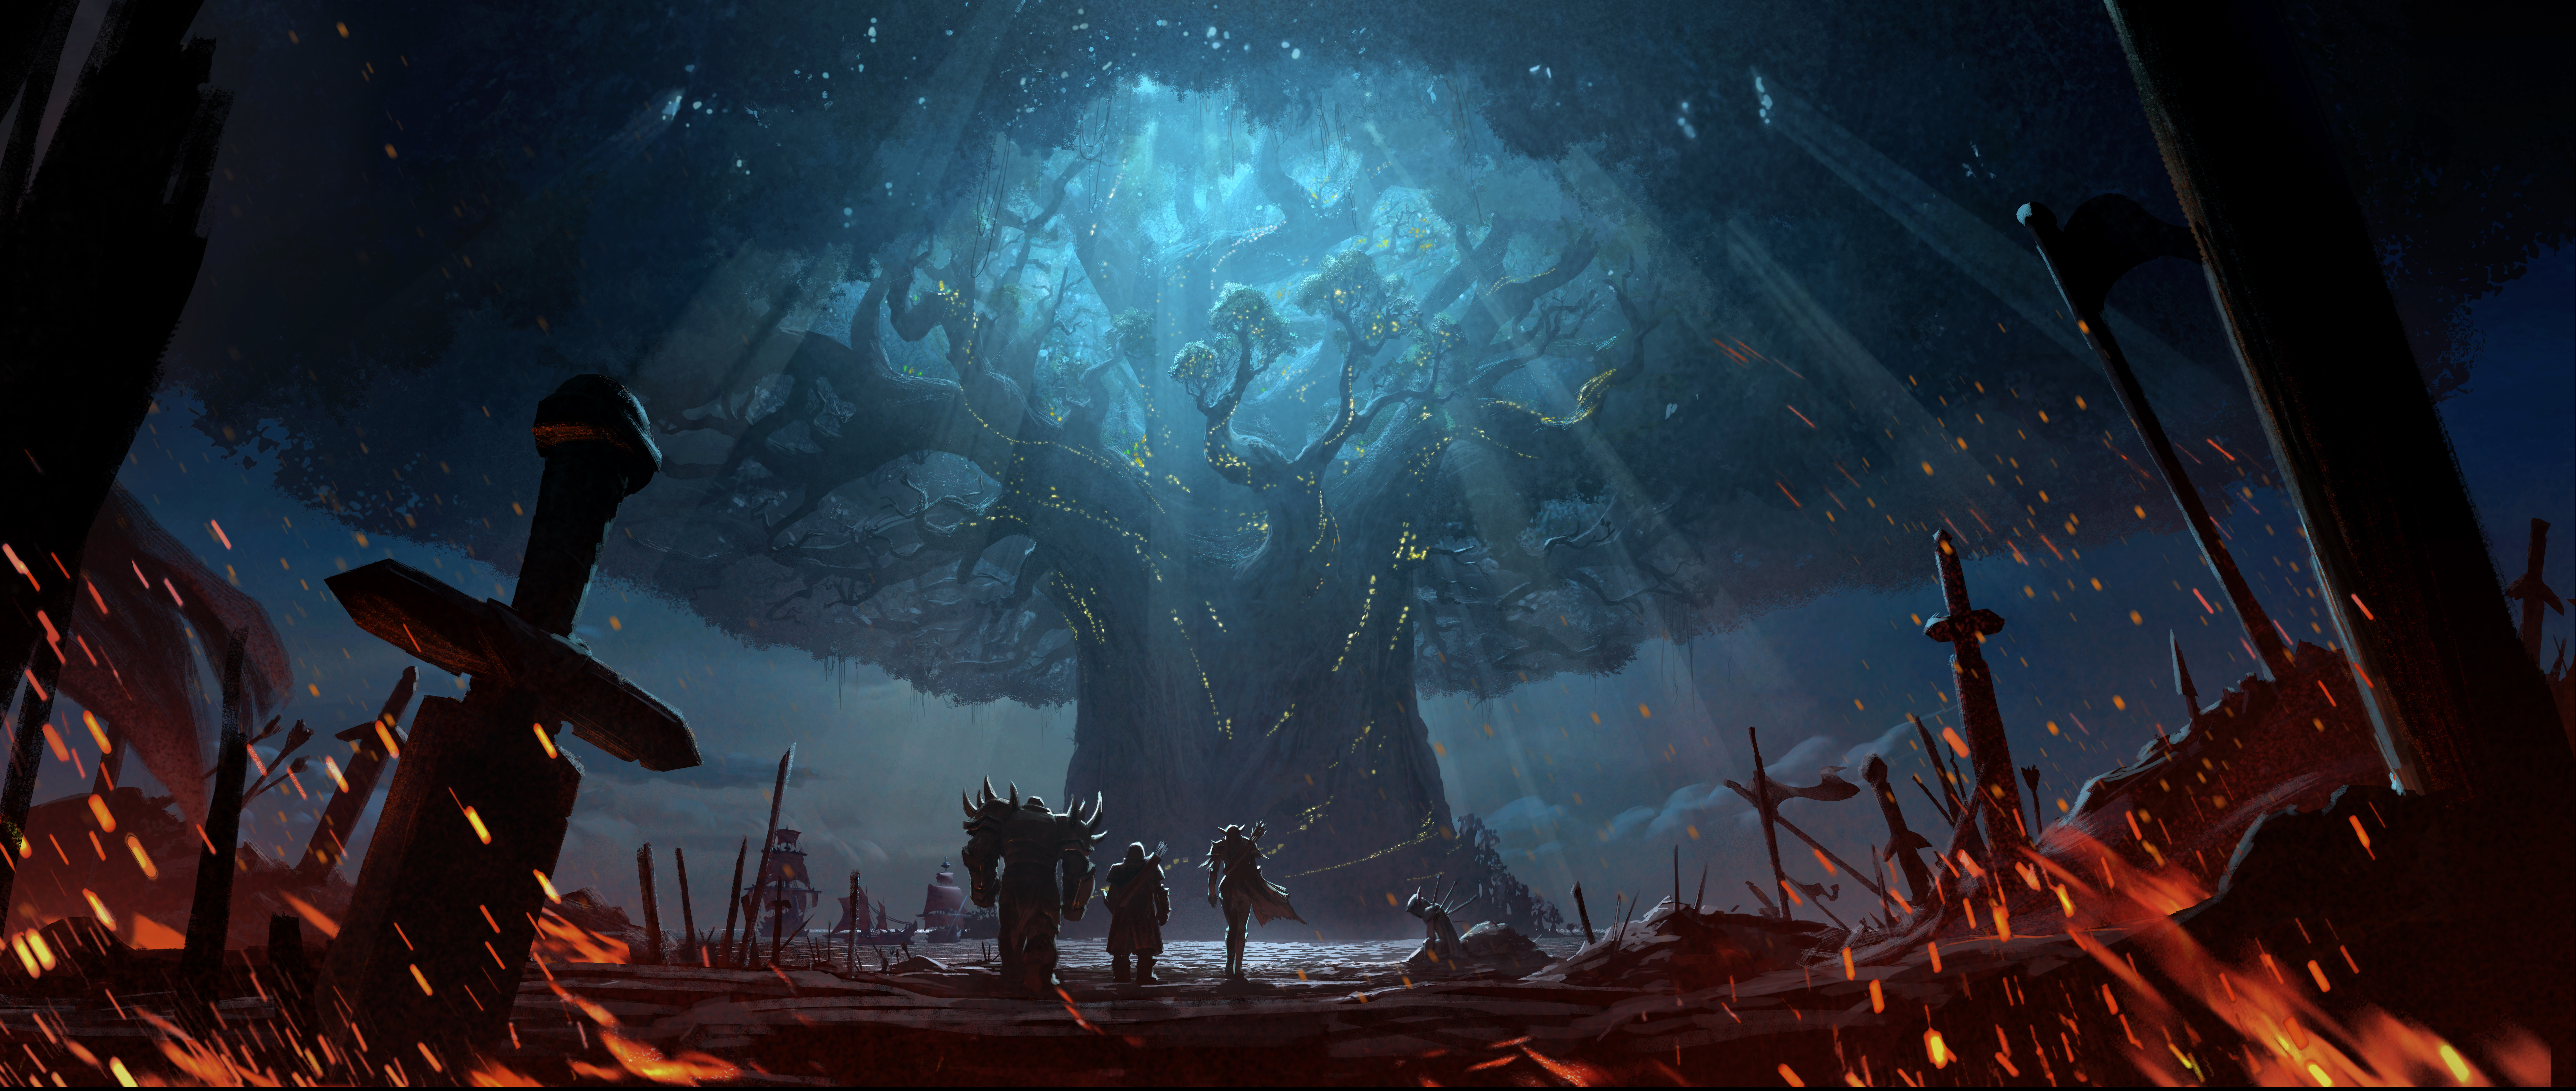 52 World Of Warcraft Battle For Azeroth Hd Wallpapers